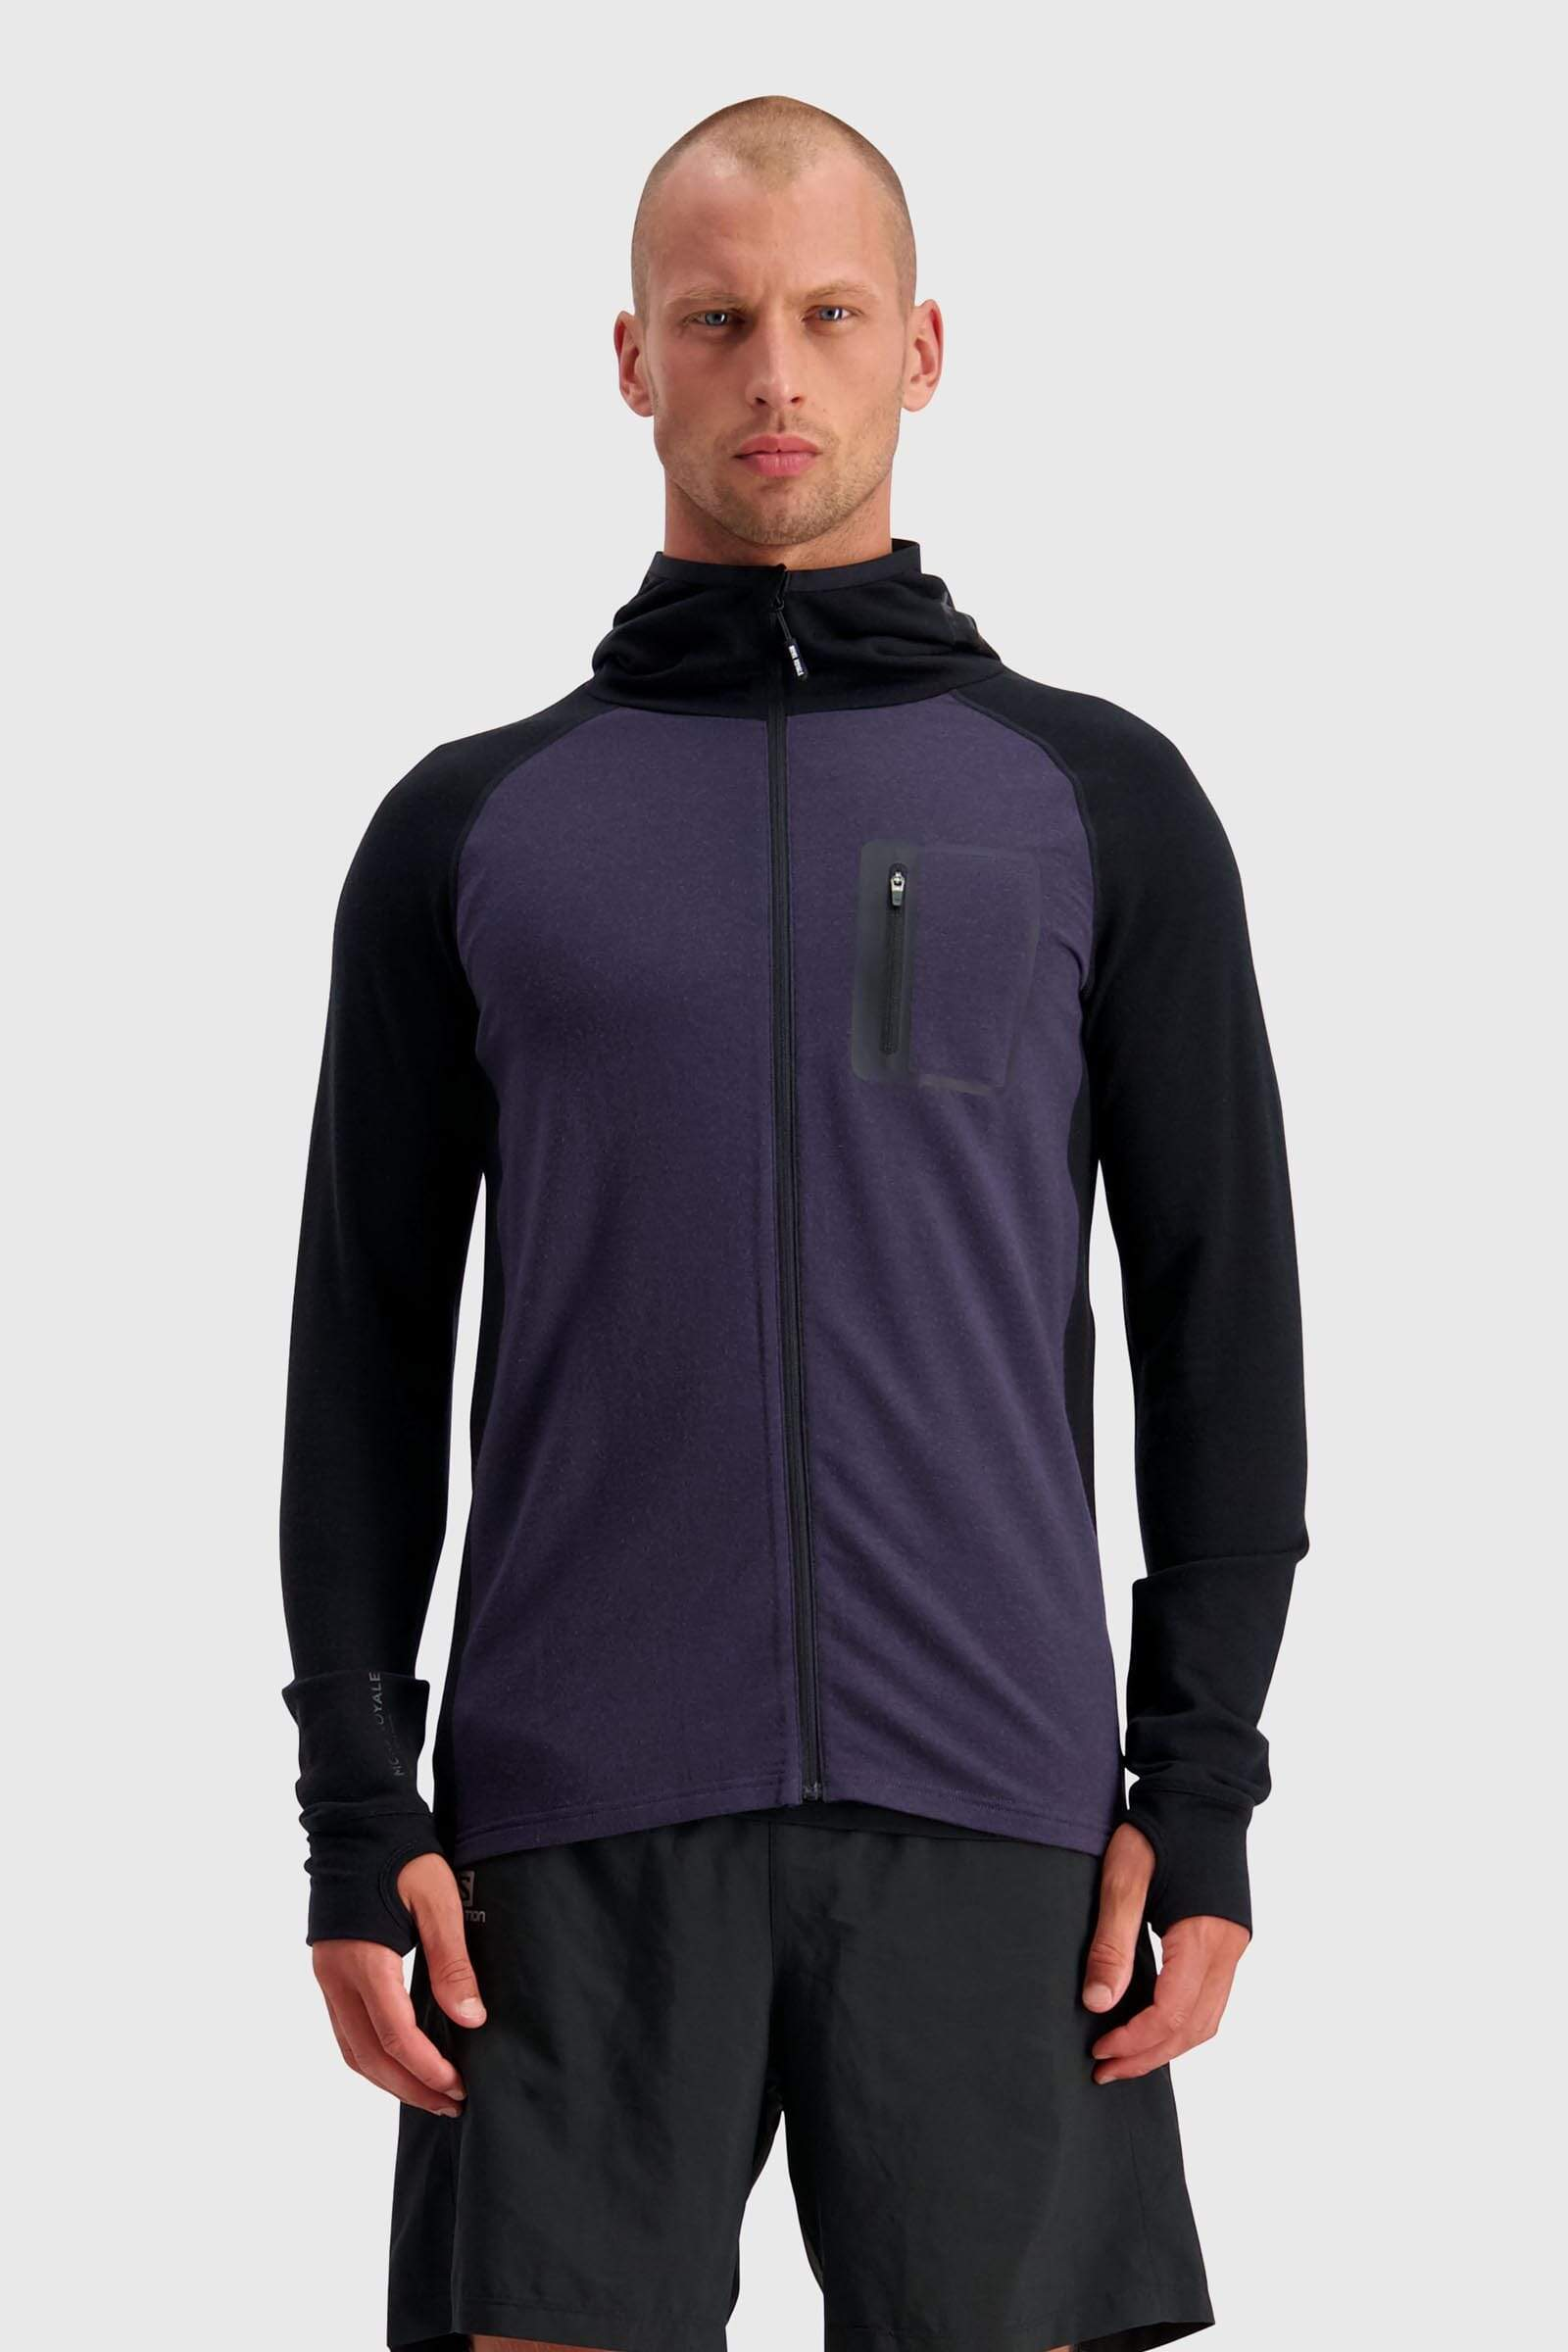 Traverse Midi Full Zip Hood - Black / 9 Iron